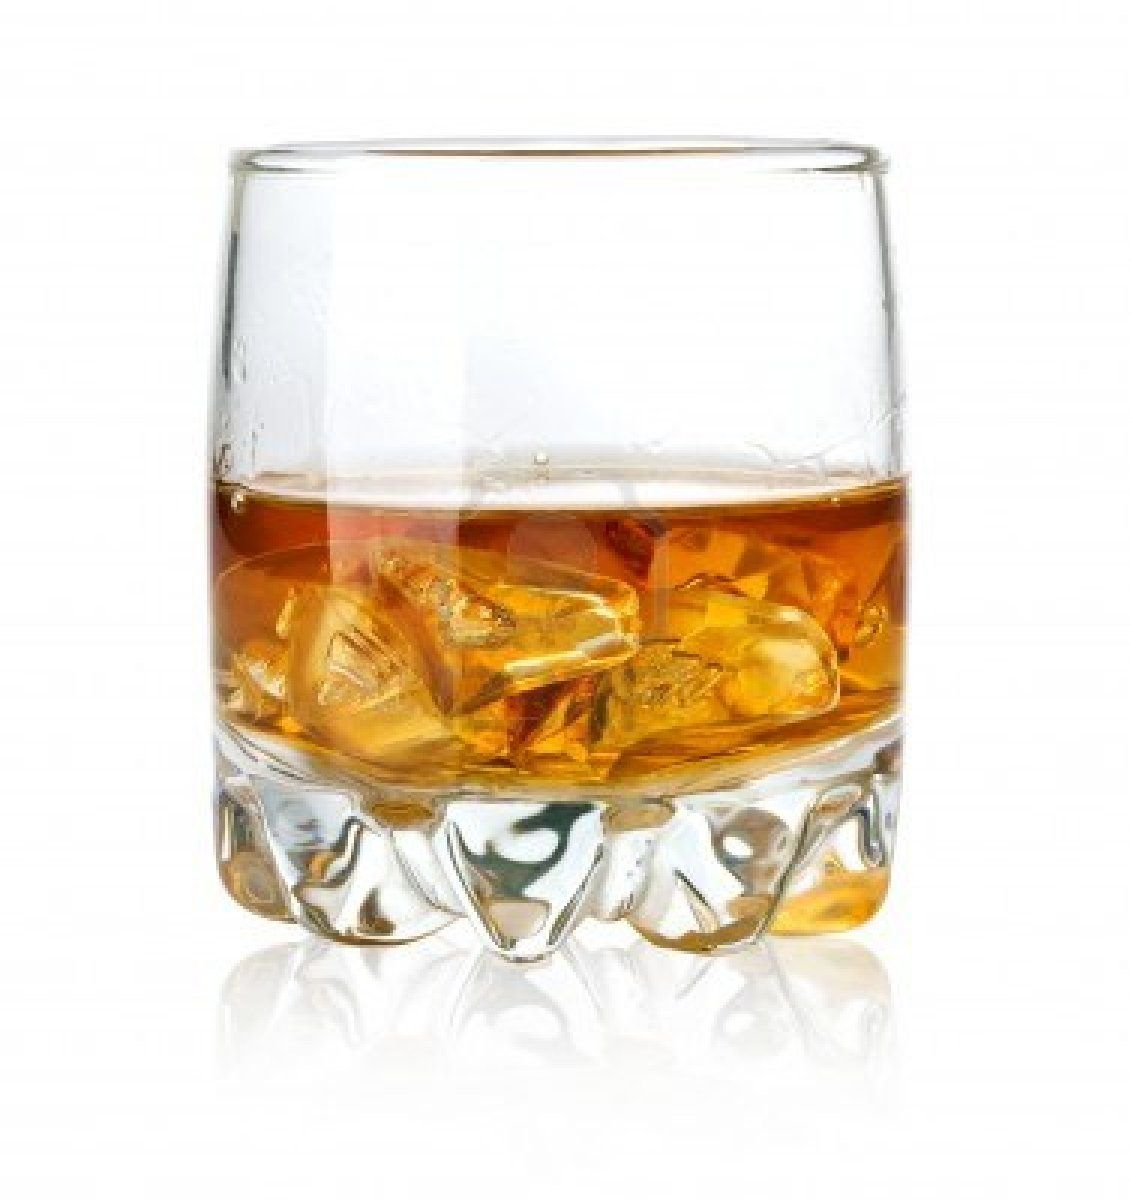 whisky icons verres pinterest the rock the o 39 jays and whisky. Black Bedroom Furniture Sets. Home Design Ideas